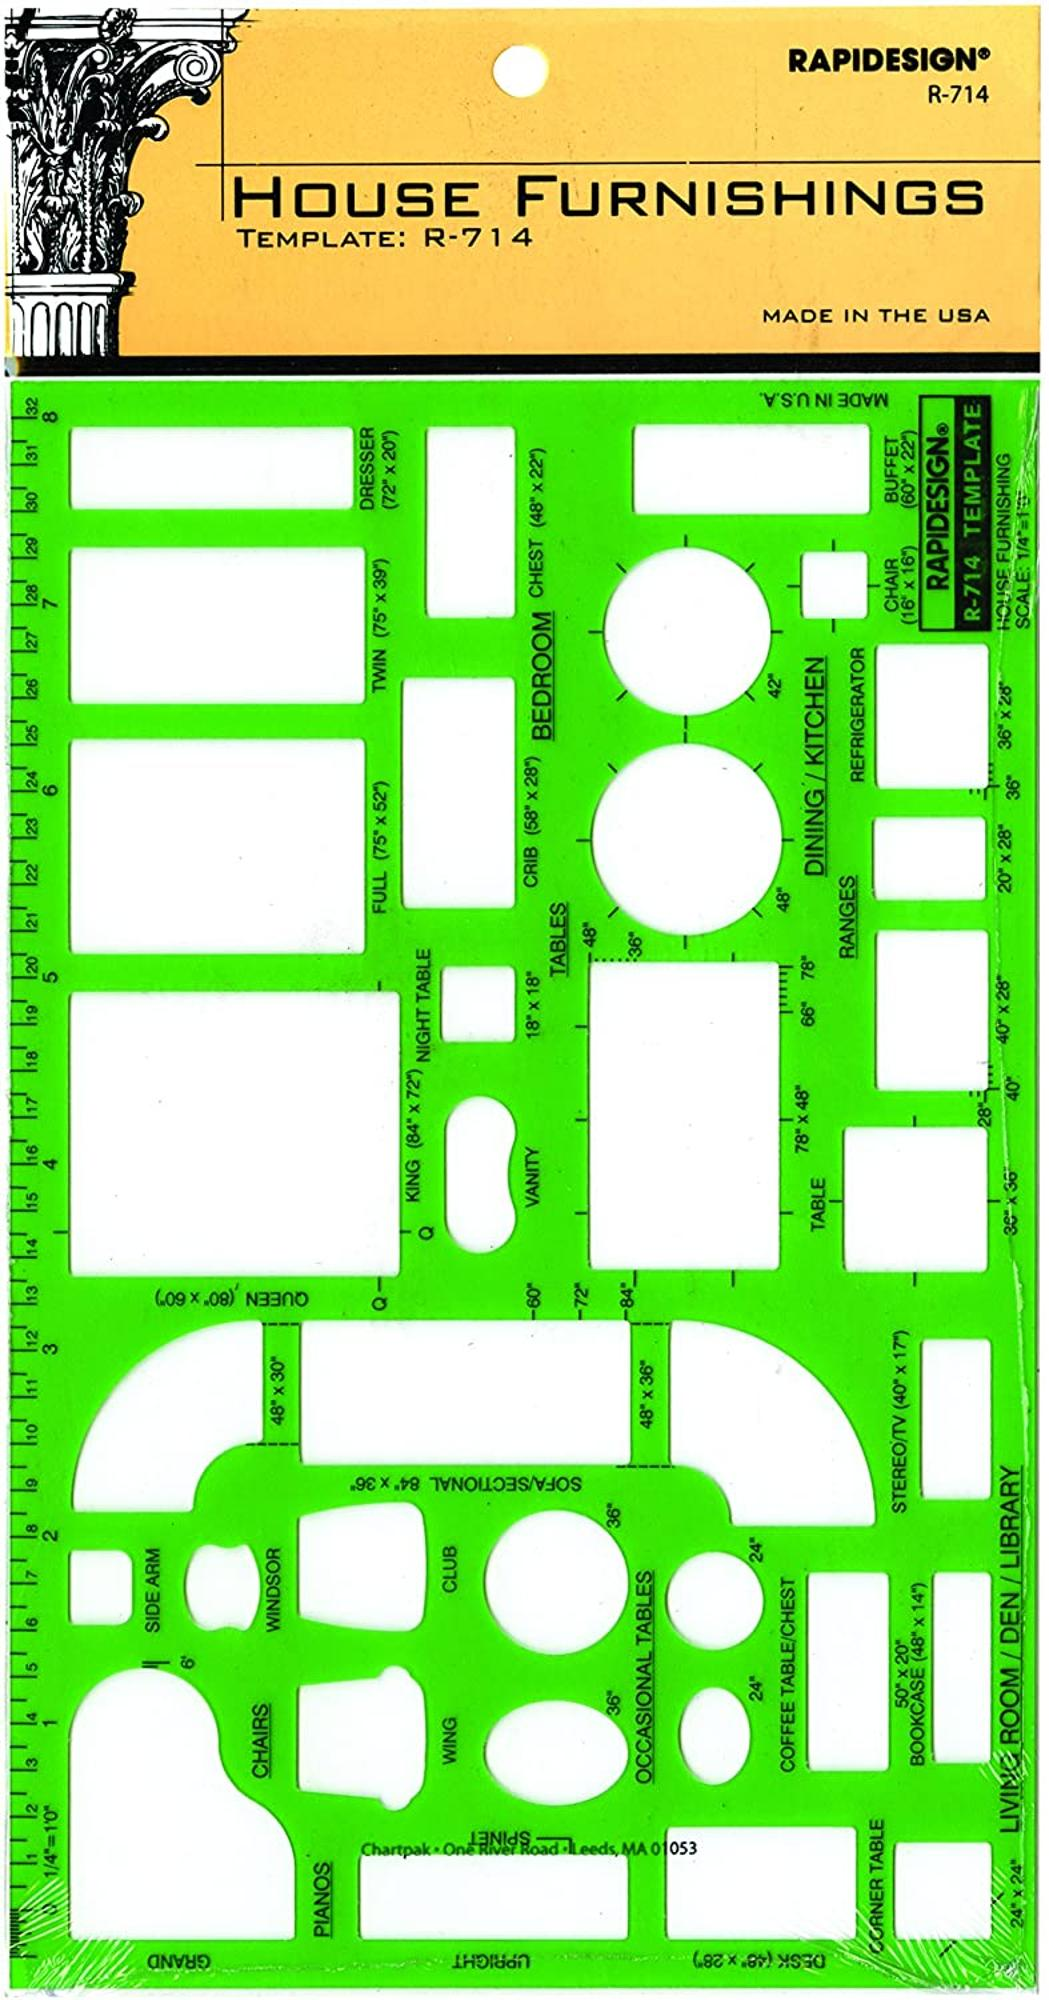 image of: Rapidesign House Furnishings Template, 1/4 Inch = 1 Foot Scale